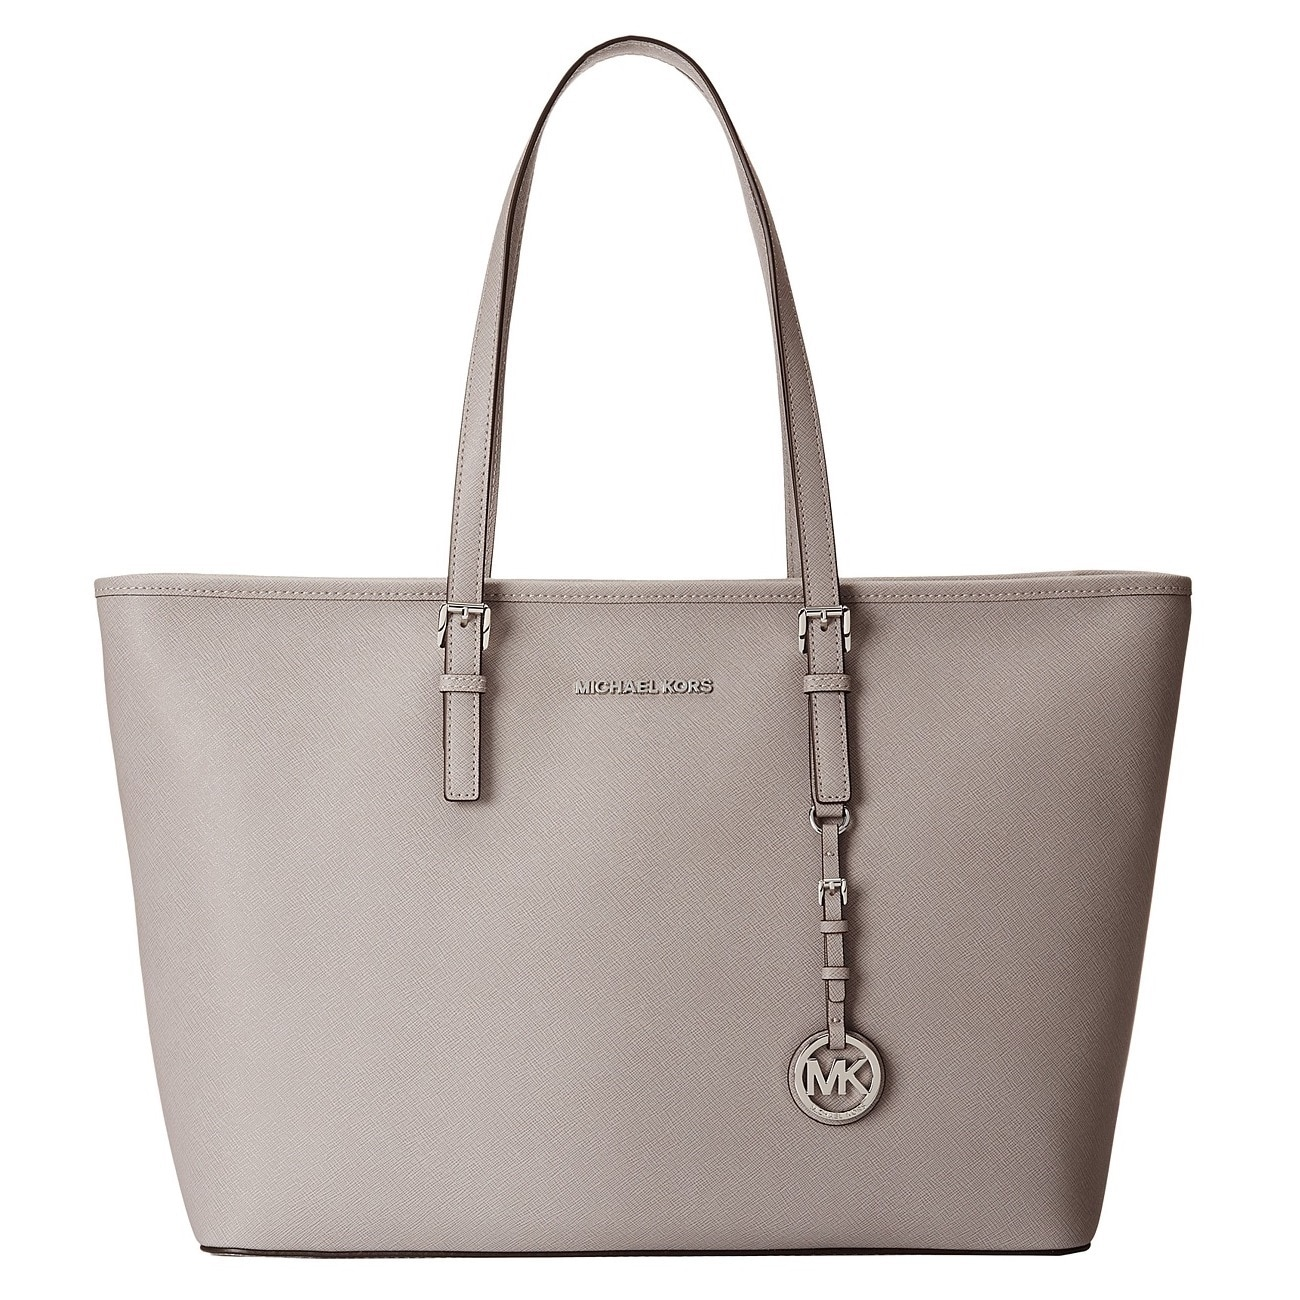 e5f28b9f13c0 Shop Michael Kors Jet Set Pearl Grey Medium Tote Handbag - Free Shipping  Today - Overstock - 10399273